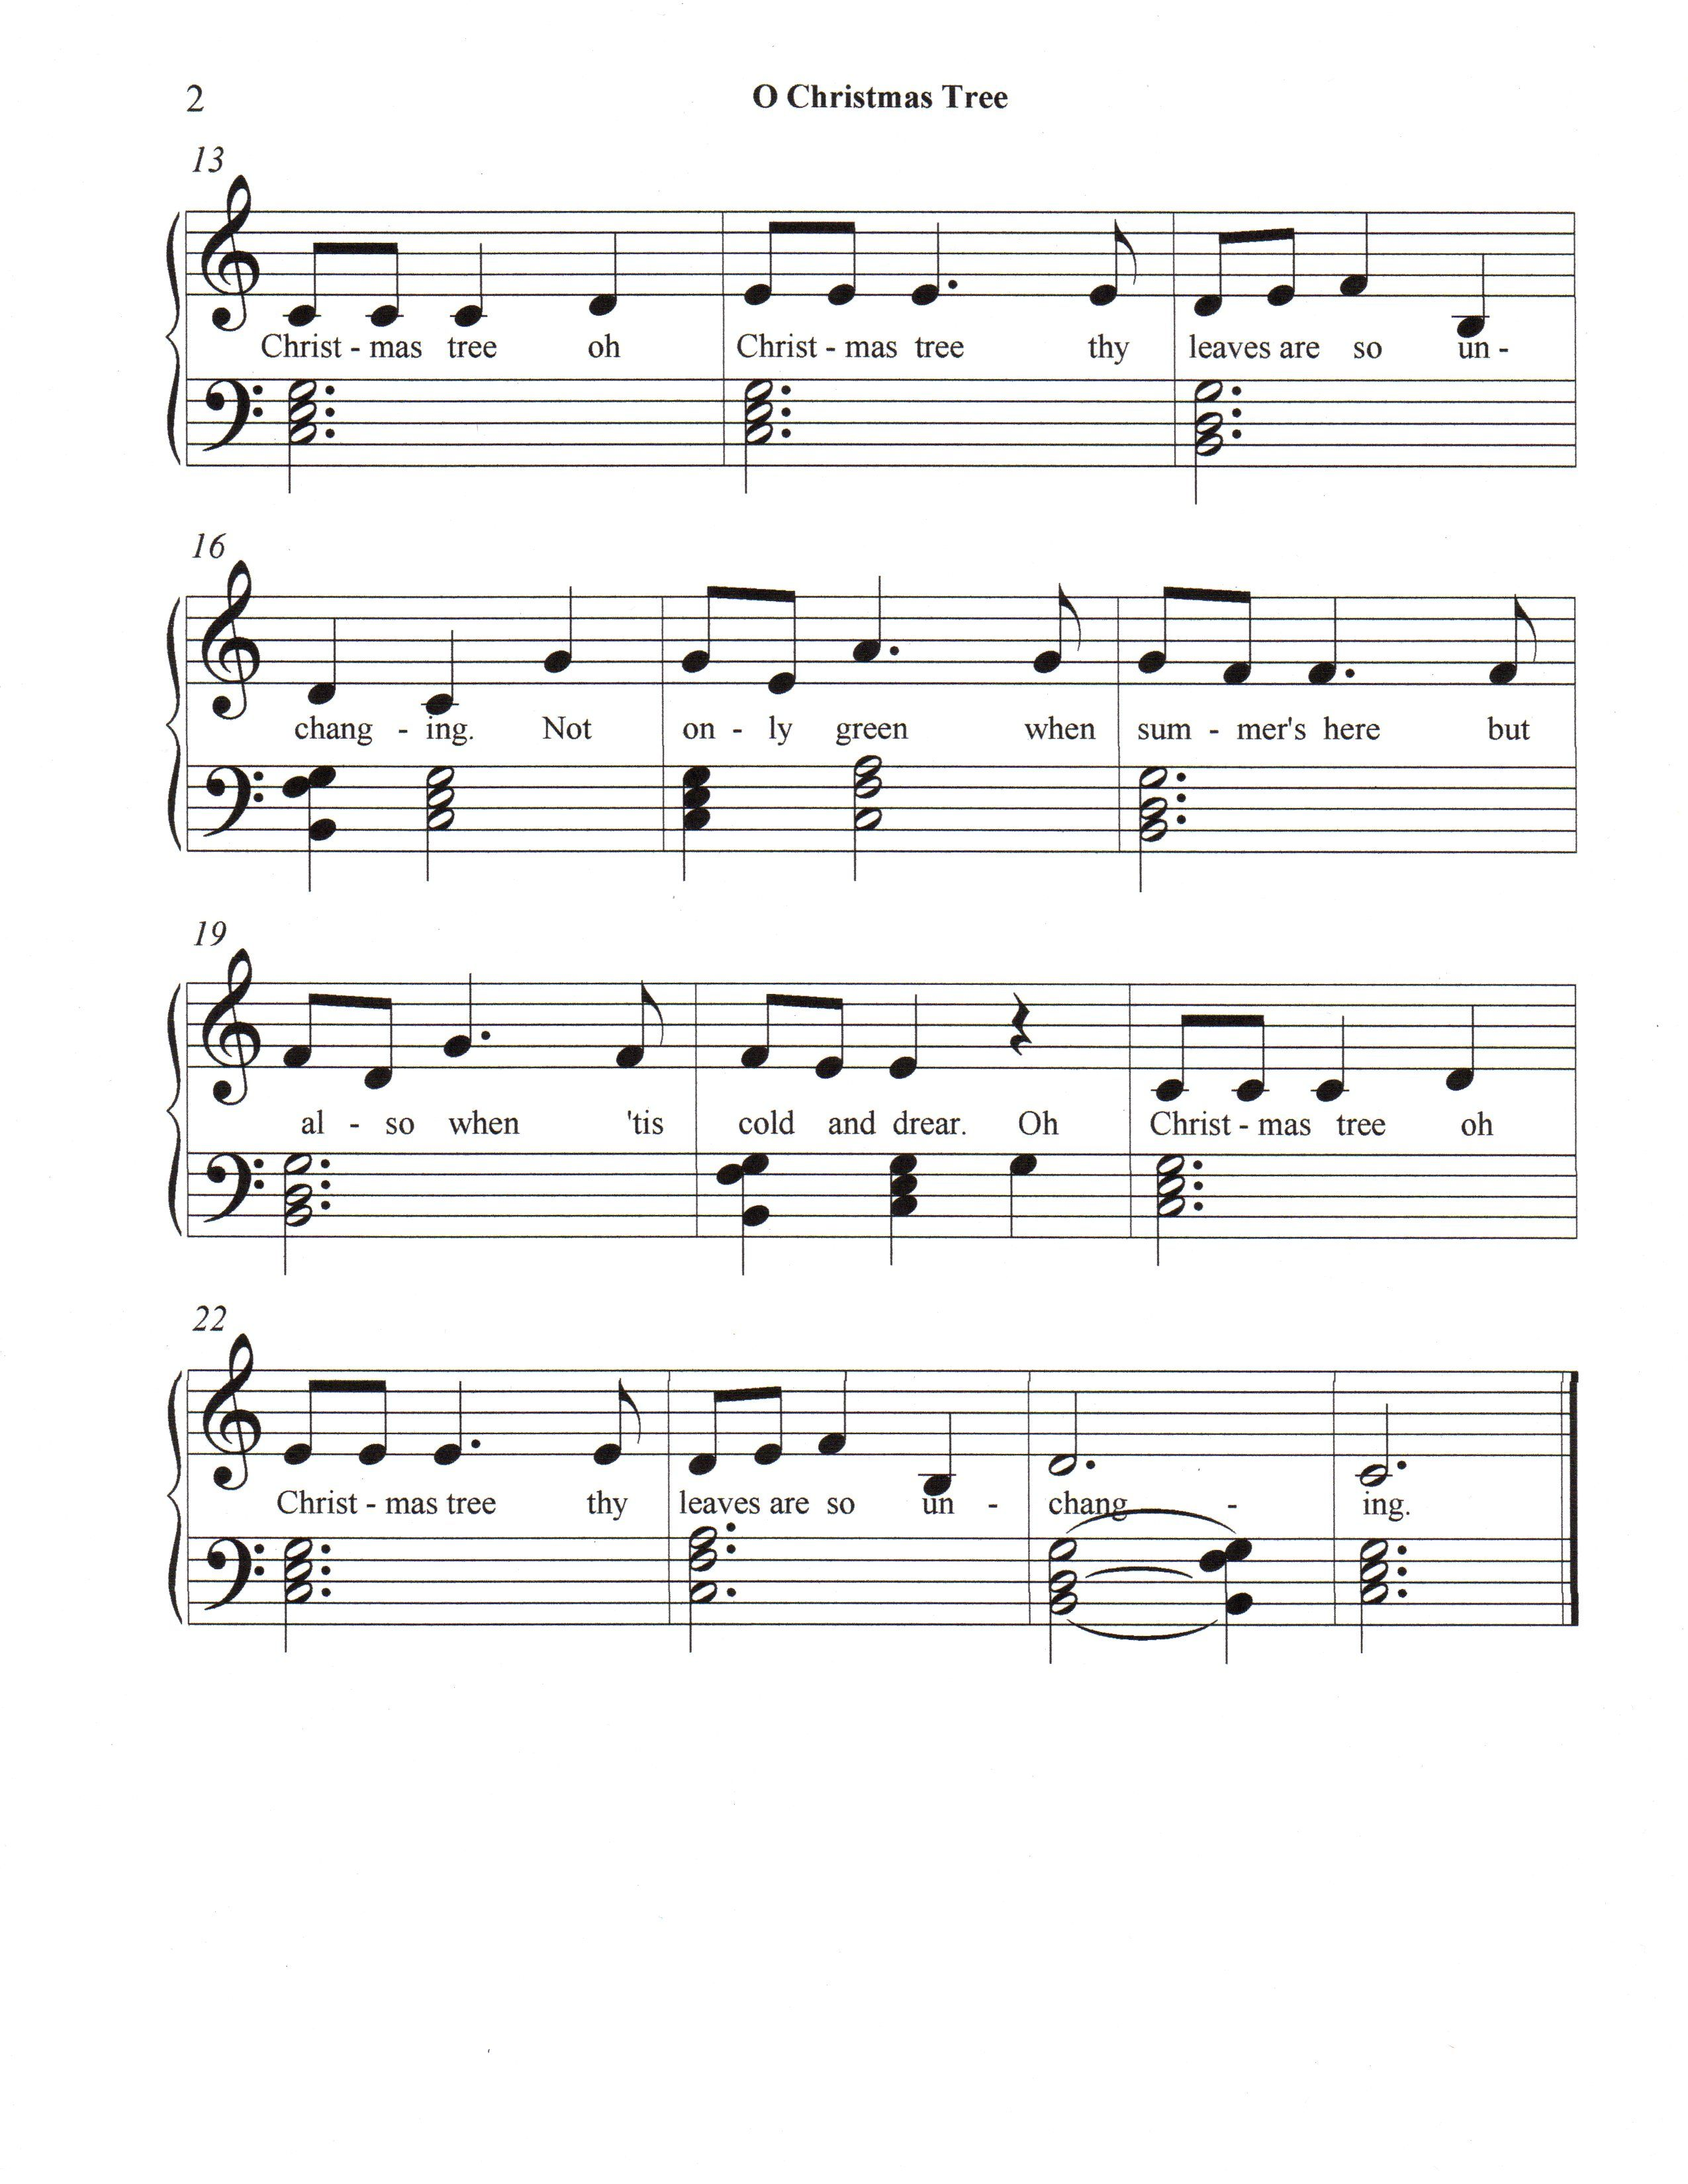 O Christmas Tree page 2 of 2, Let\'s Play Music! | Music | Pinterest ...